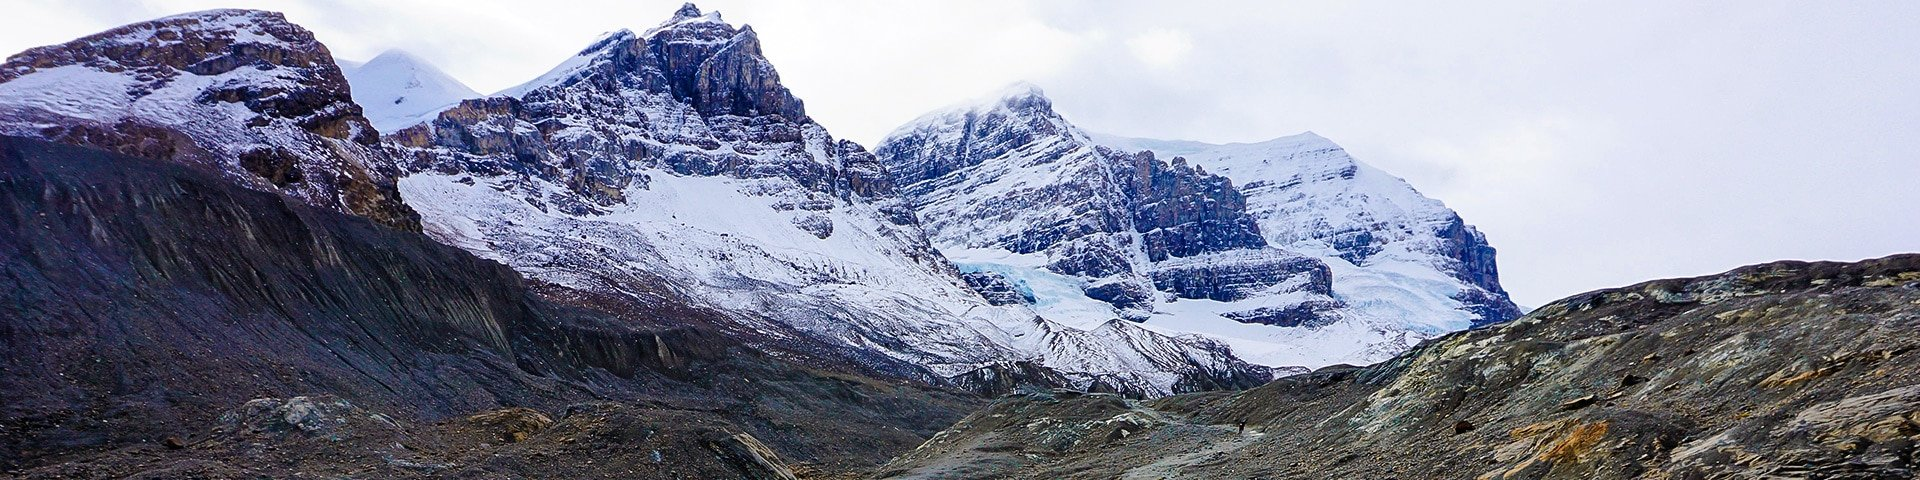 Panorama from the Toe of the Athabasca Glacier hike on Icefields Parkway, the Canadian Rockies